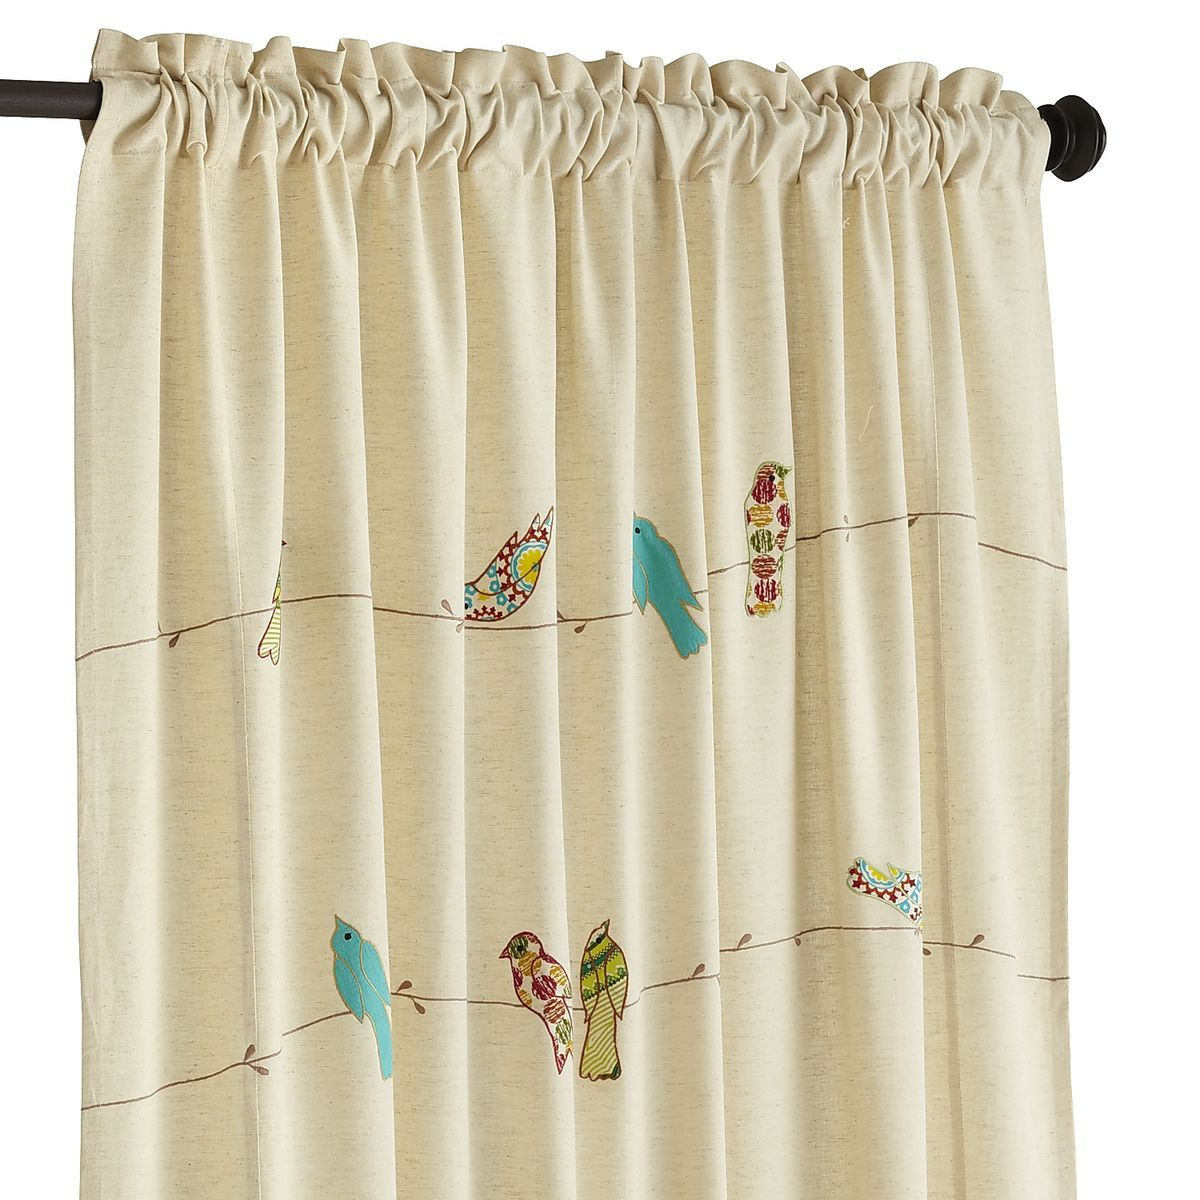 Applique Birds Wire Curtain Bird Curtains Patterns